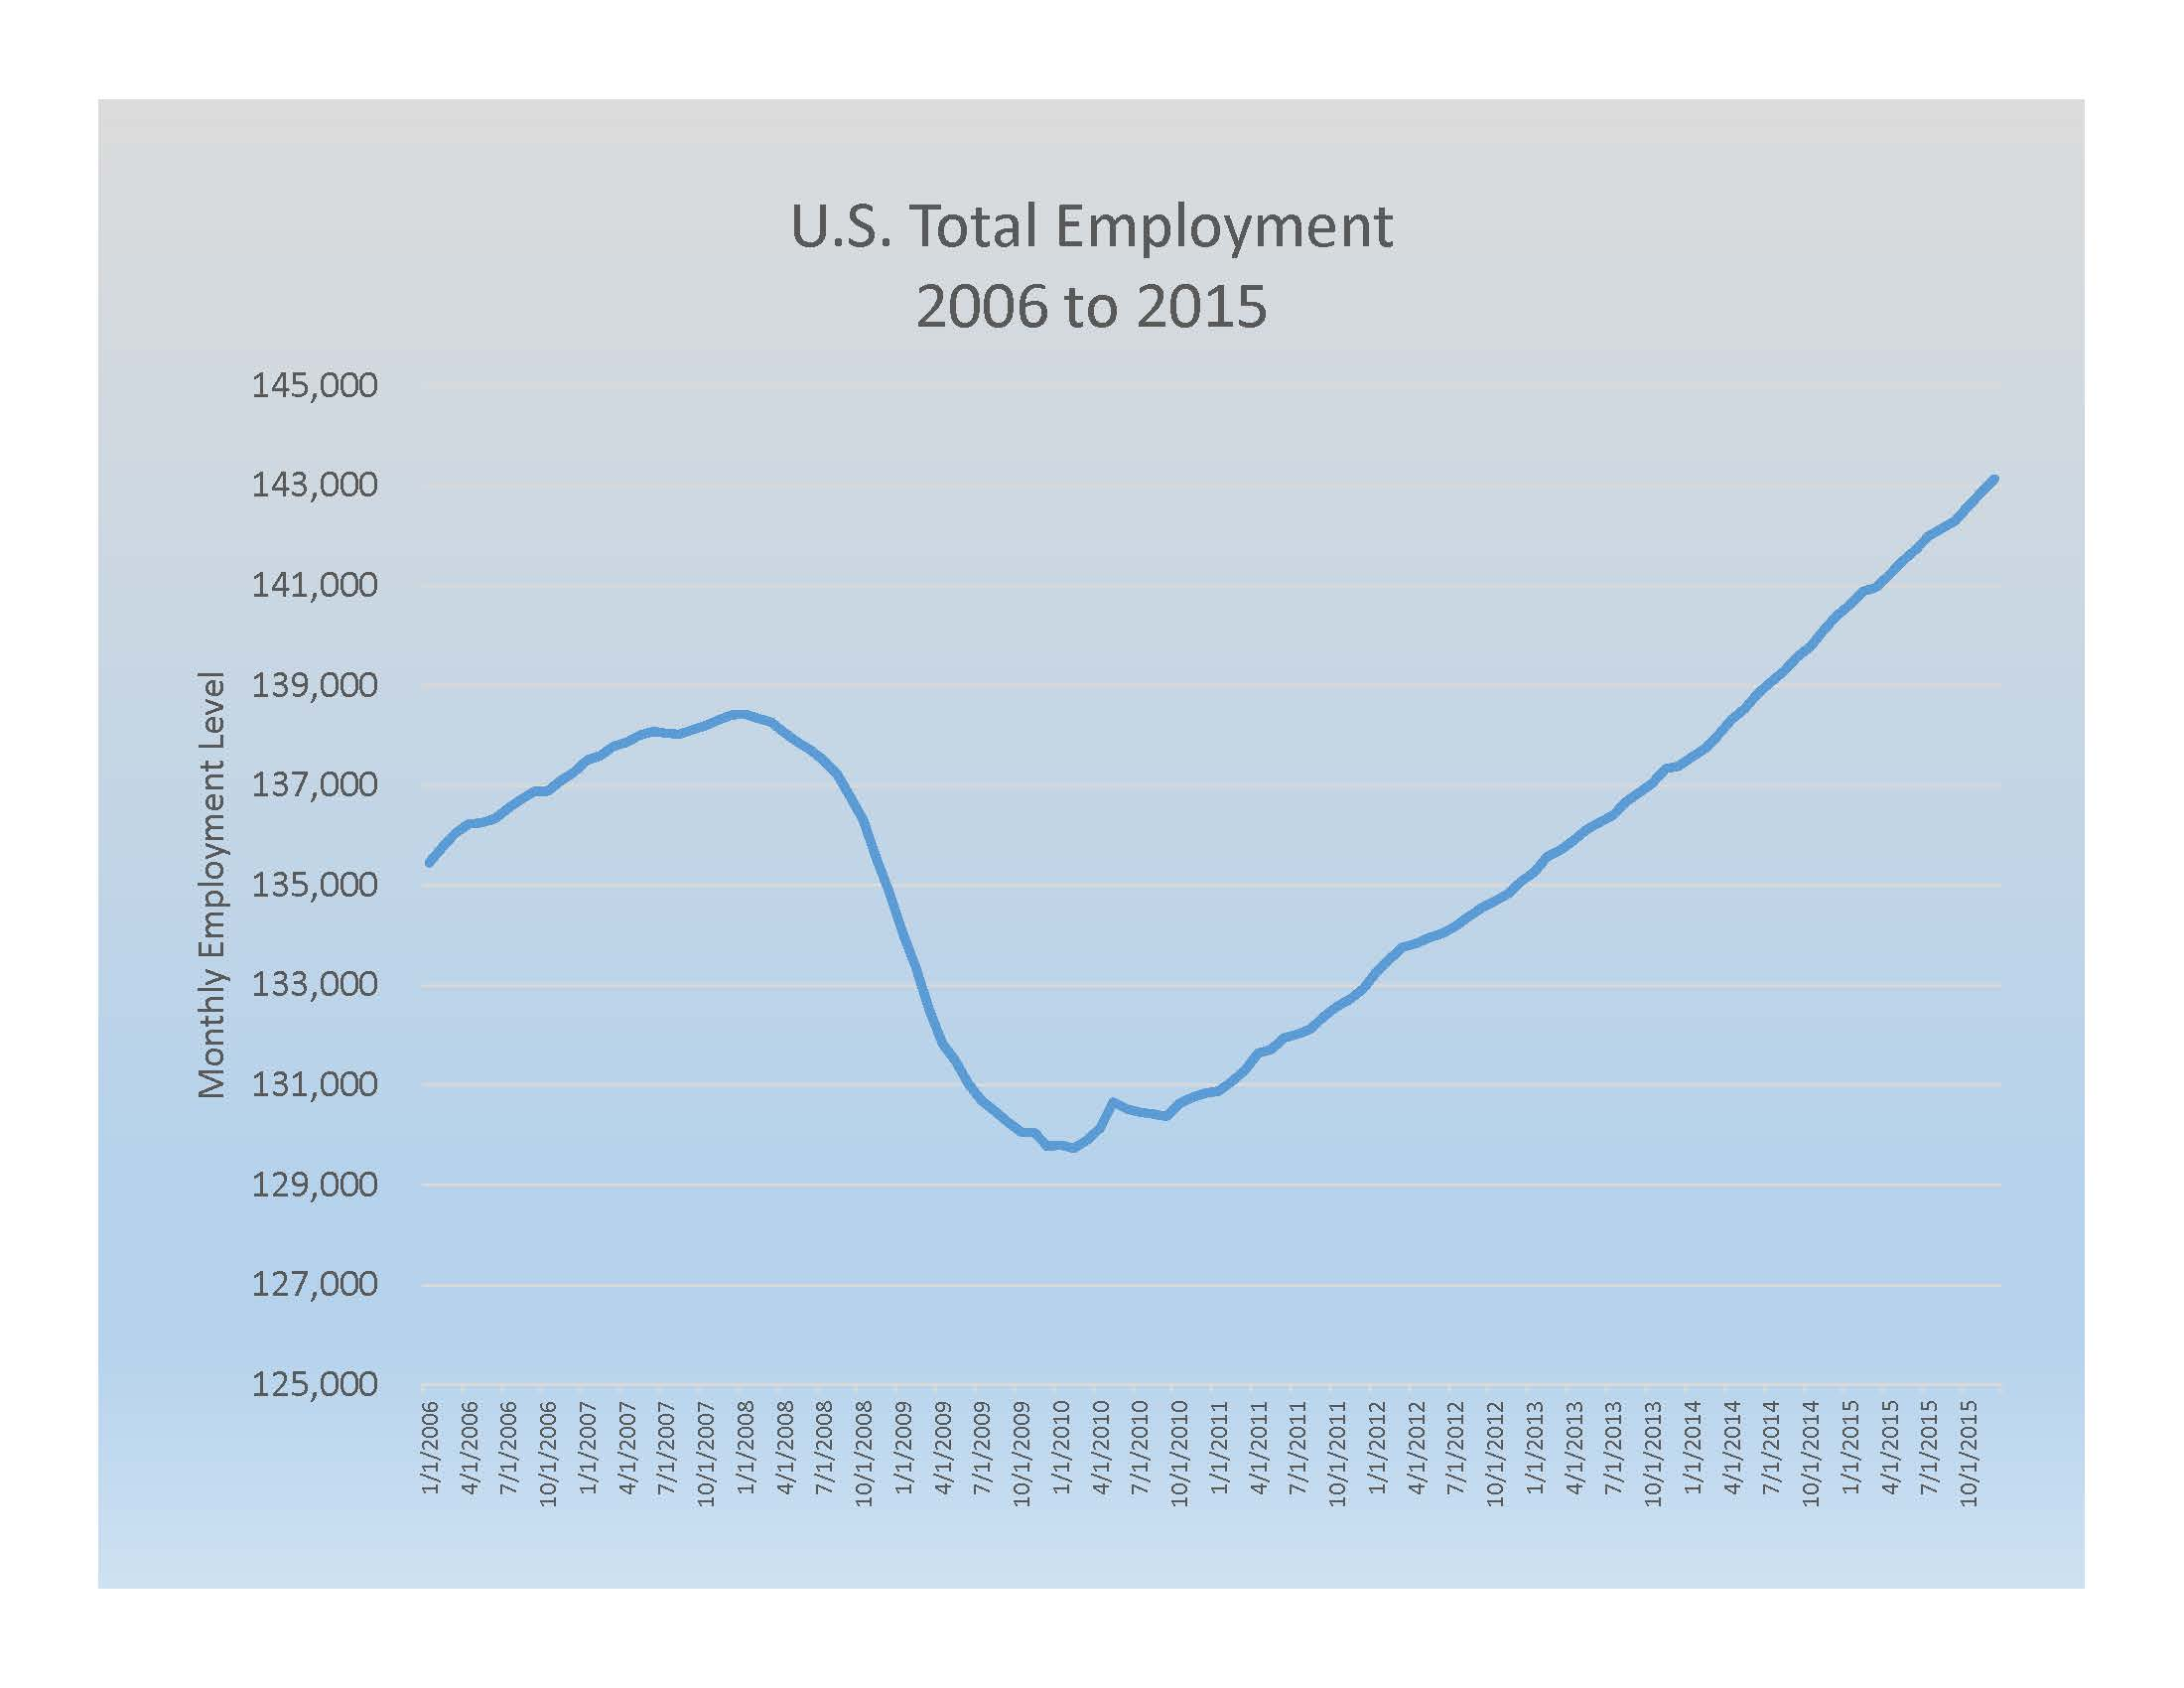 U. S. Total Employment 2006 to 2015